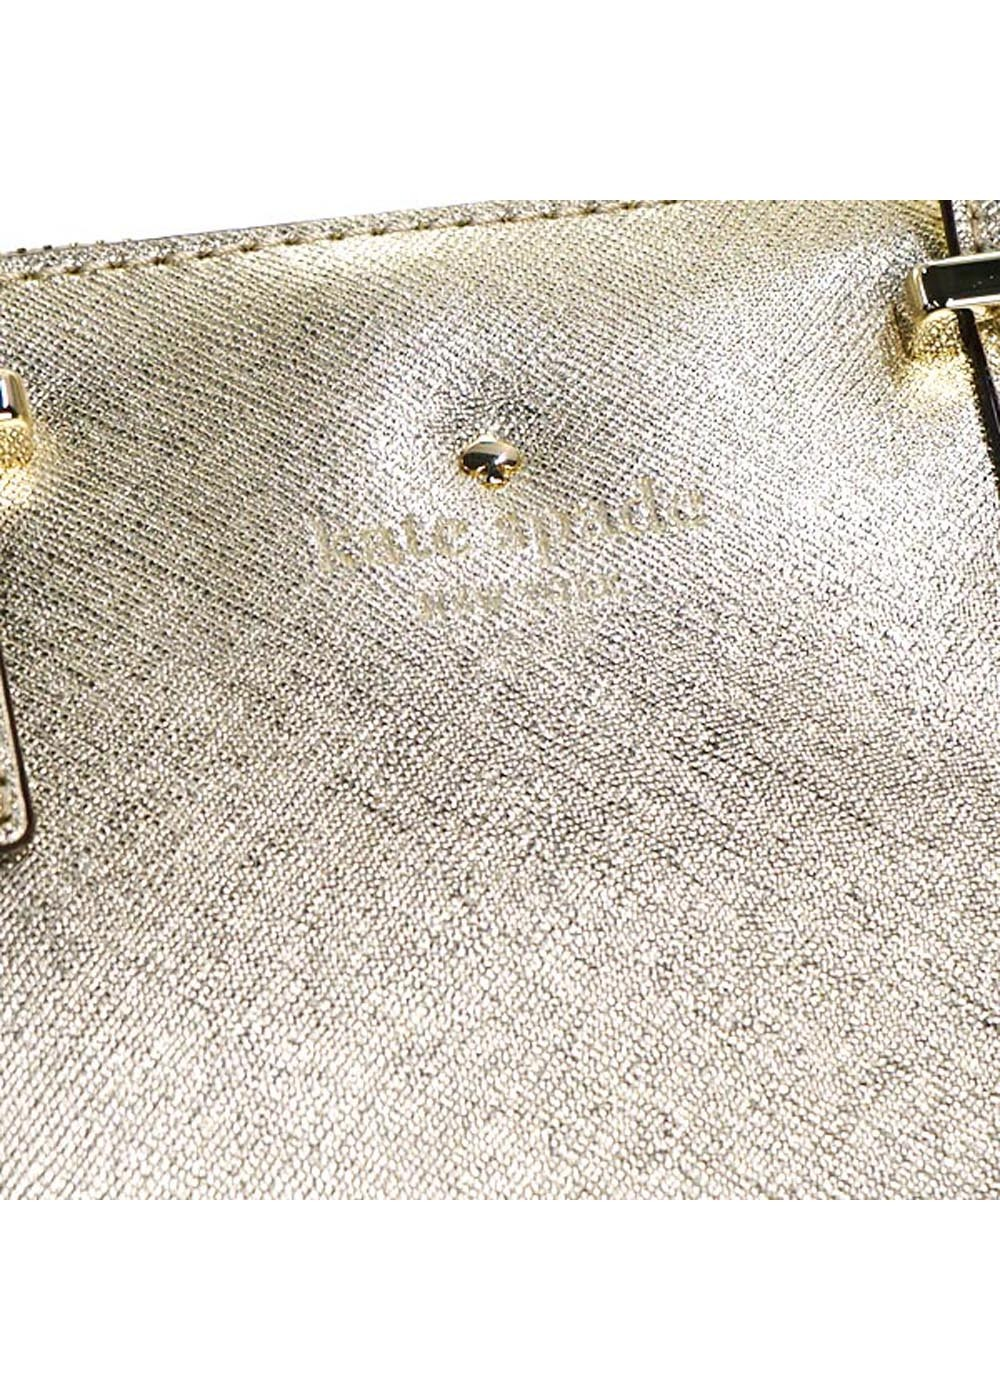 【10/2 PRICE DOWN】MAISE|GOLD|ハンドバッグ|kate spade new york (C)|最大39%OFF